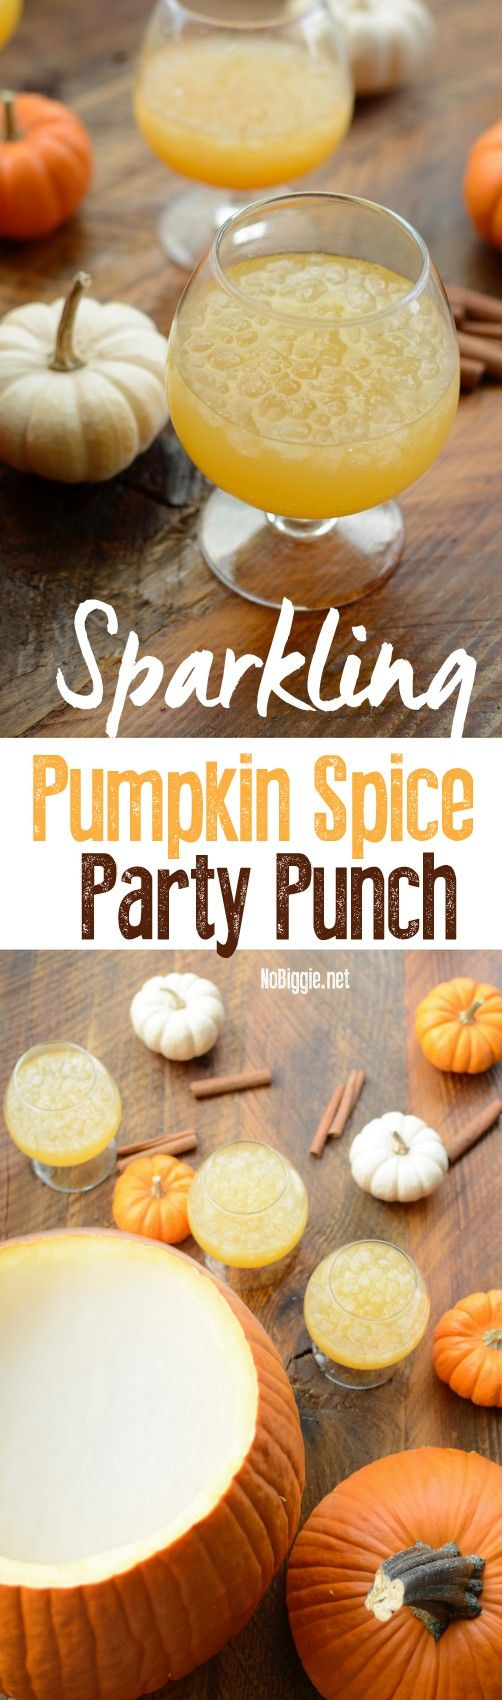 Sparkling Pumpkin Spice Punch Ingredients ½ cup pumpkin puree ½ cup orange juice concentrate ½ cup sugar ½ cup water ¼ cup lemon juice 1 teaspoon pumpkin spice 1 2 liter bottle Sprite 1 bag of Sonic Pebble Ice 1 Pumpkin, hallowed out for serving